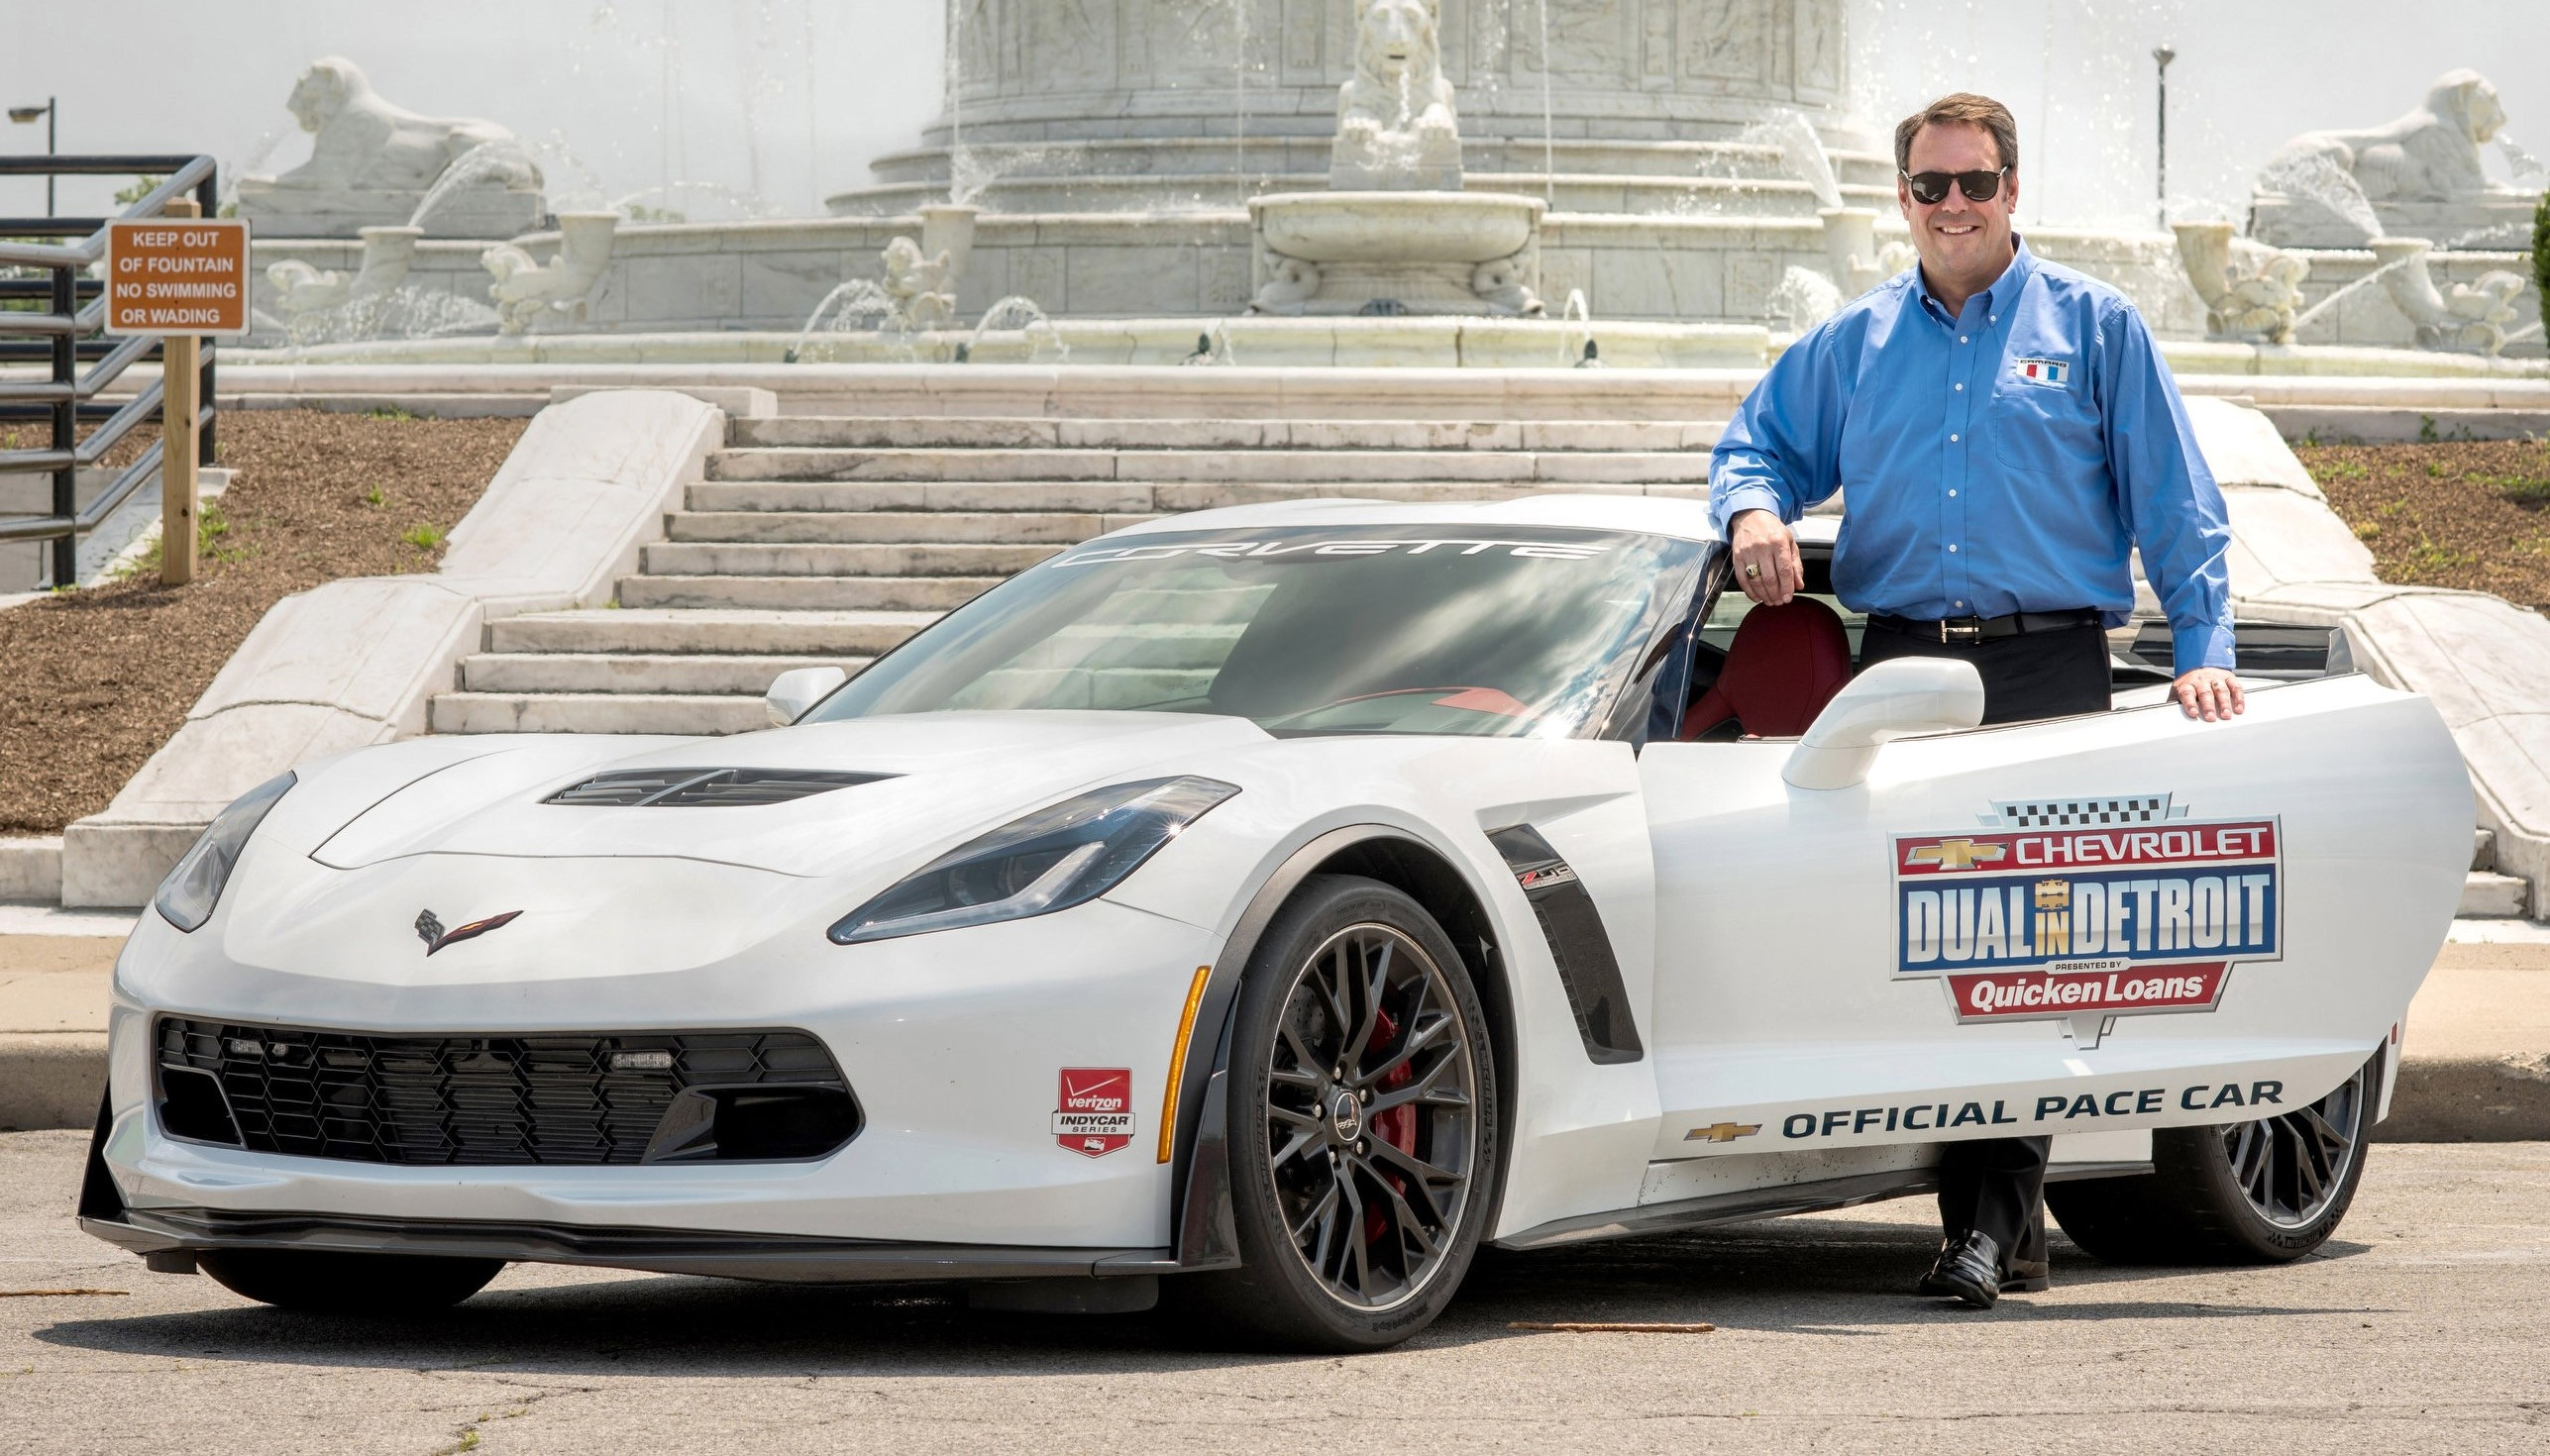 gm executive mark reuss to pace detroit grand prix in corvette z06 motrface. Black Bedroom Furniture Sets. Home Design Ideas